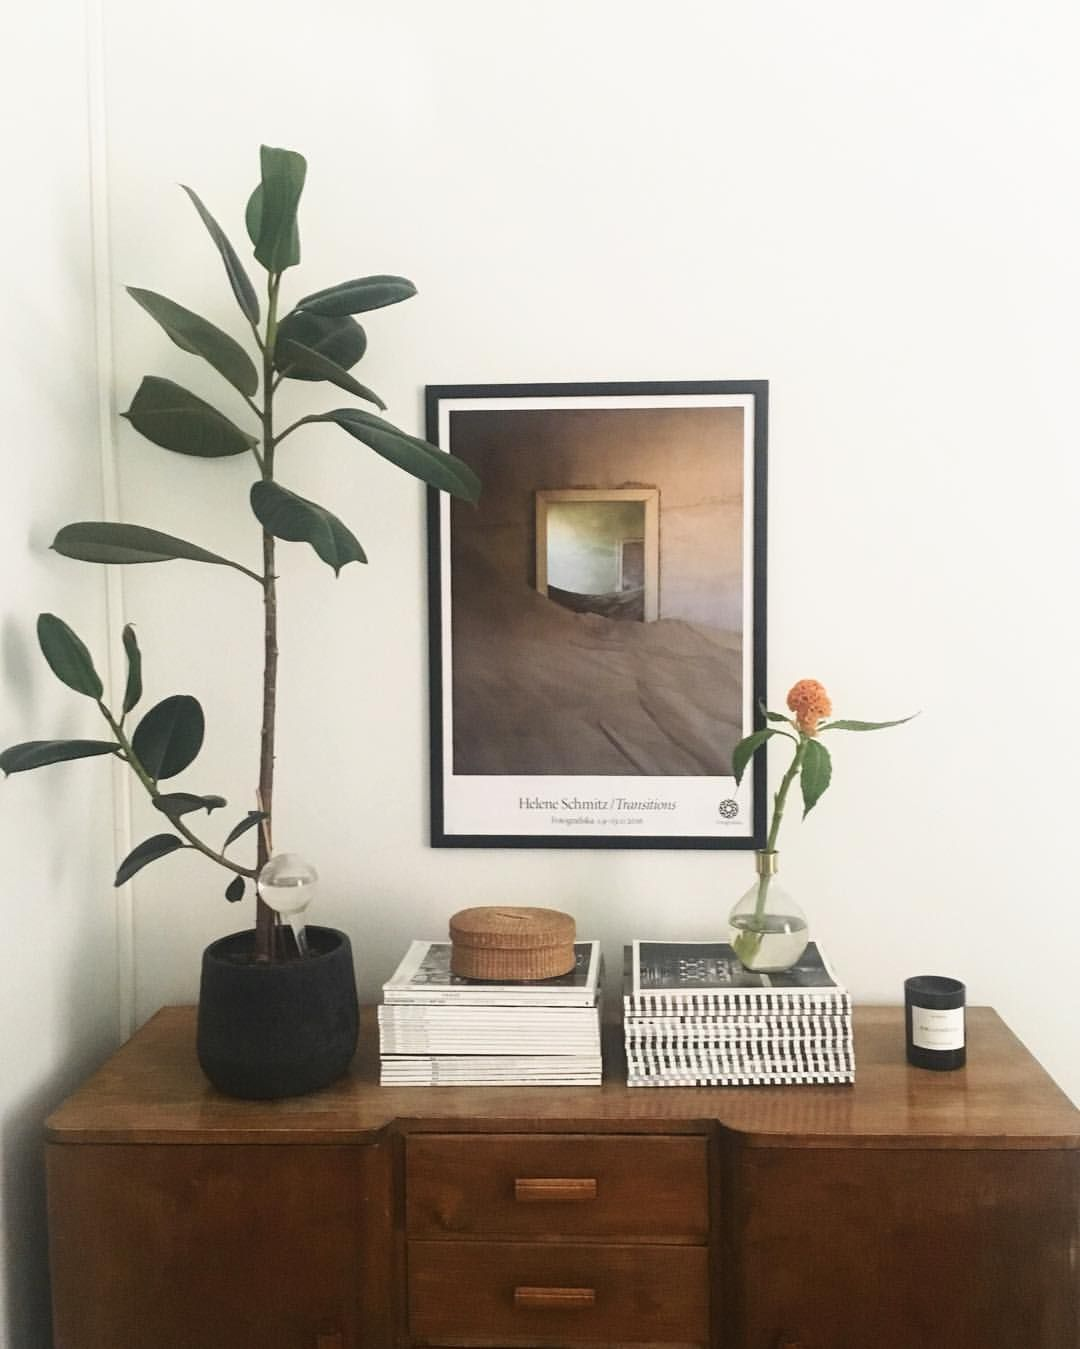 "169 Likes, 2 Comments - Pinja Forsman (@pinja.forsman) on Instagram: ""Never get bored with this poster. #heleneschmitz #fotografiska #home #plants #flowers…"""